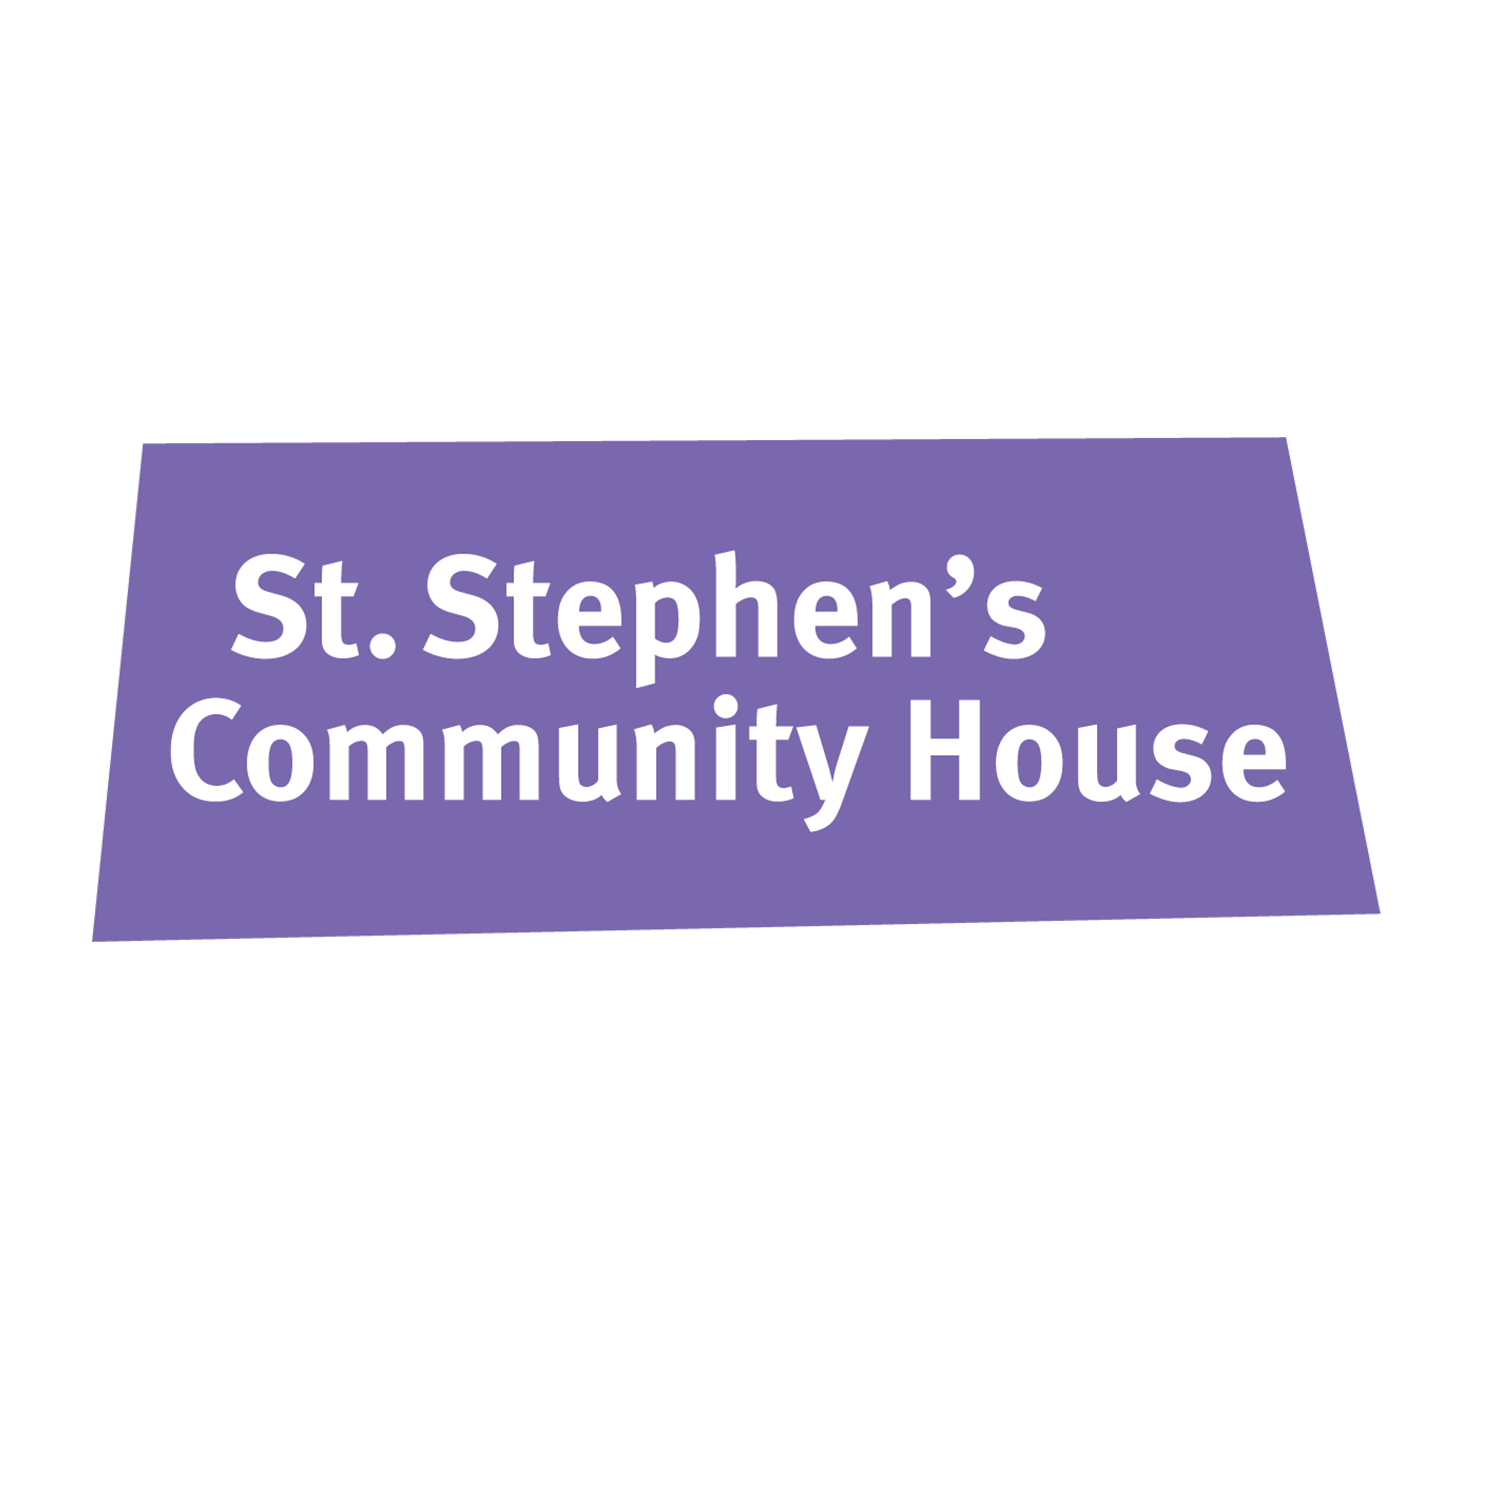 St. Stephen's Community House